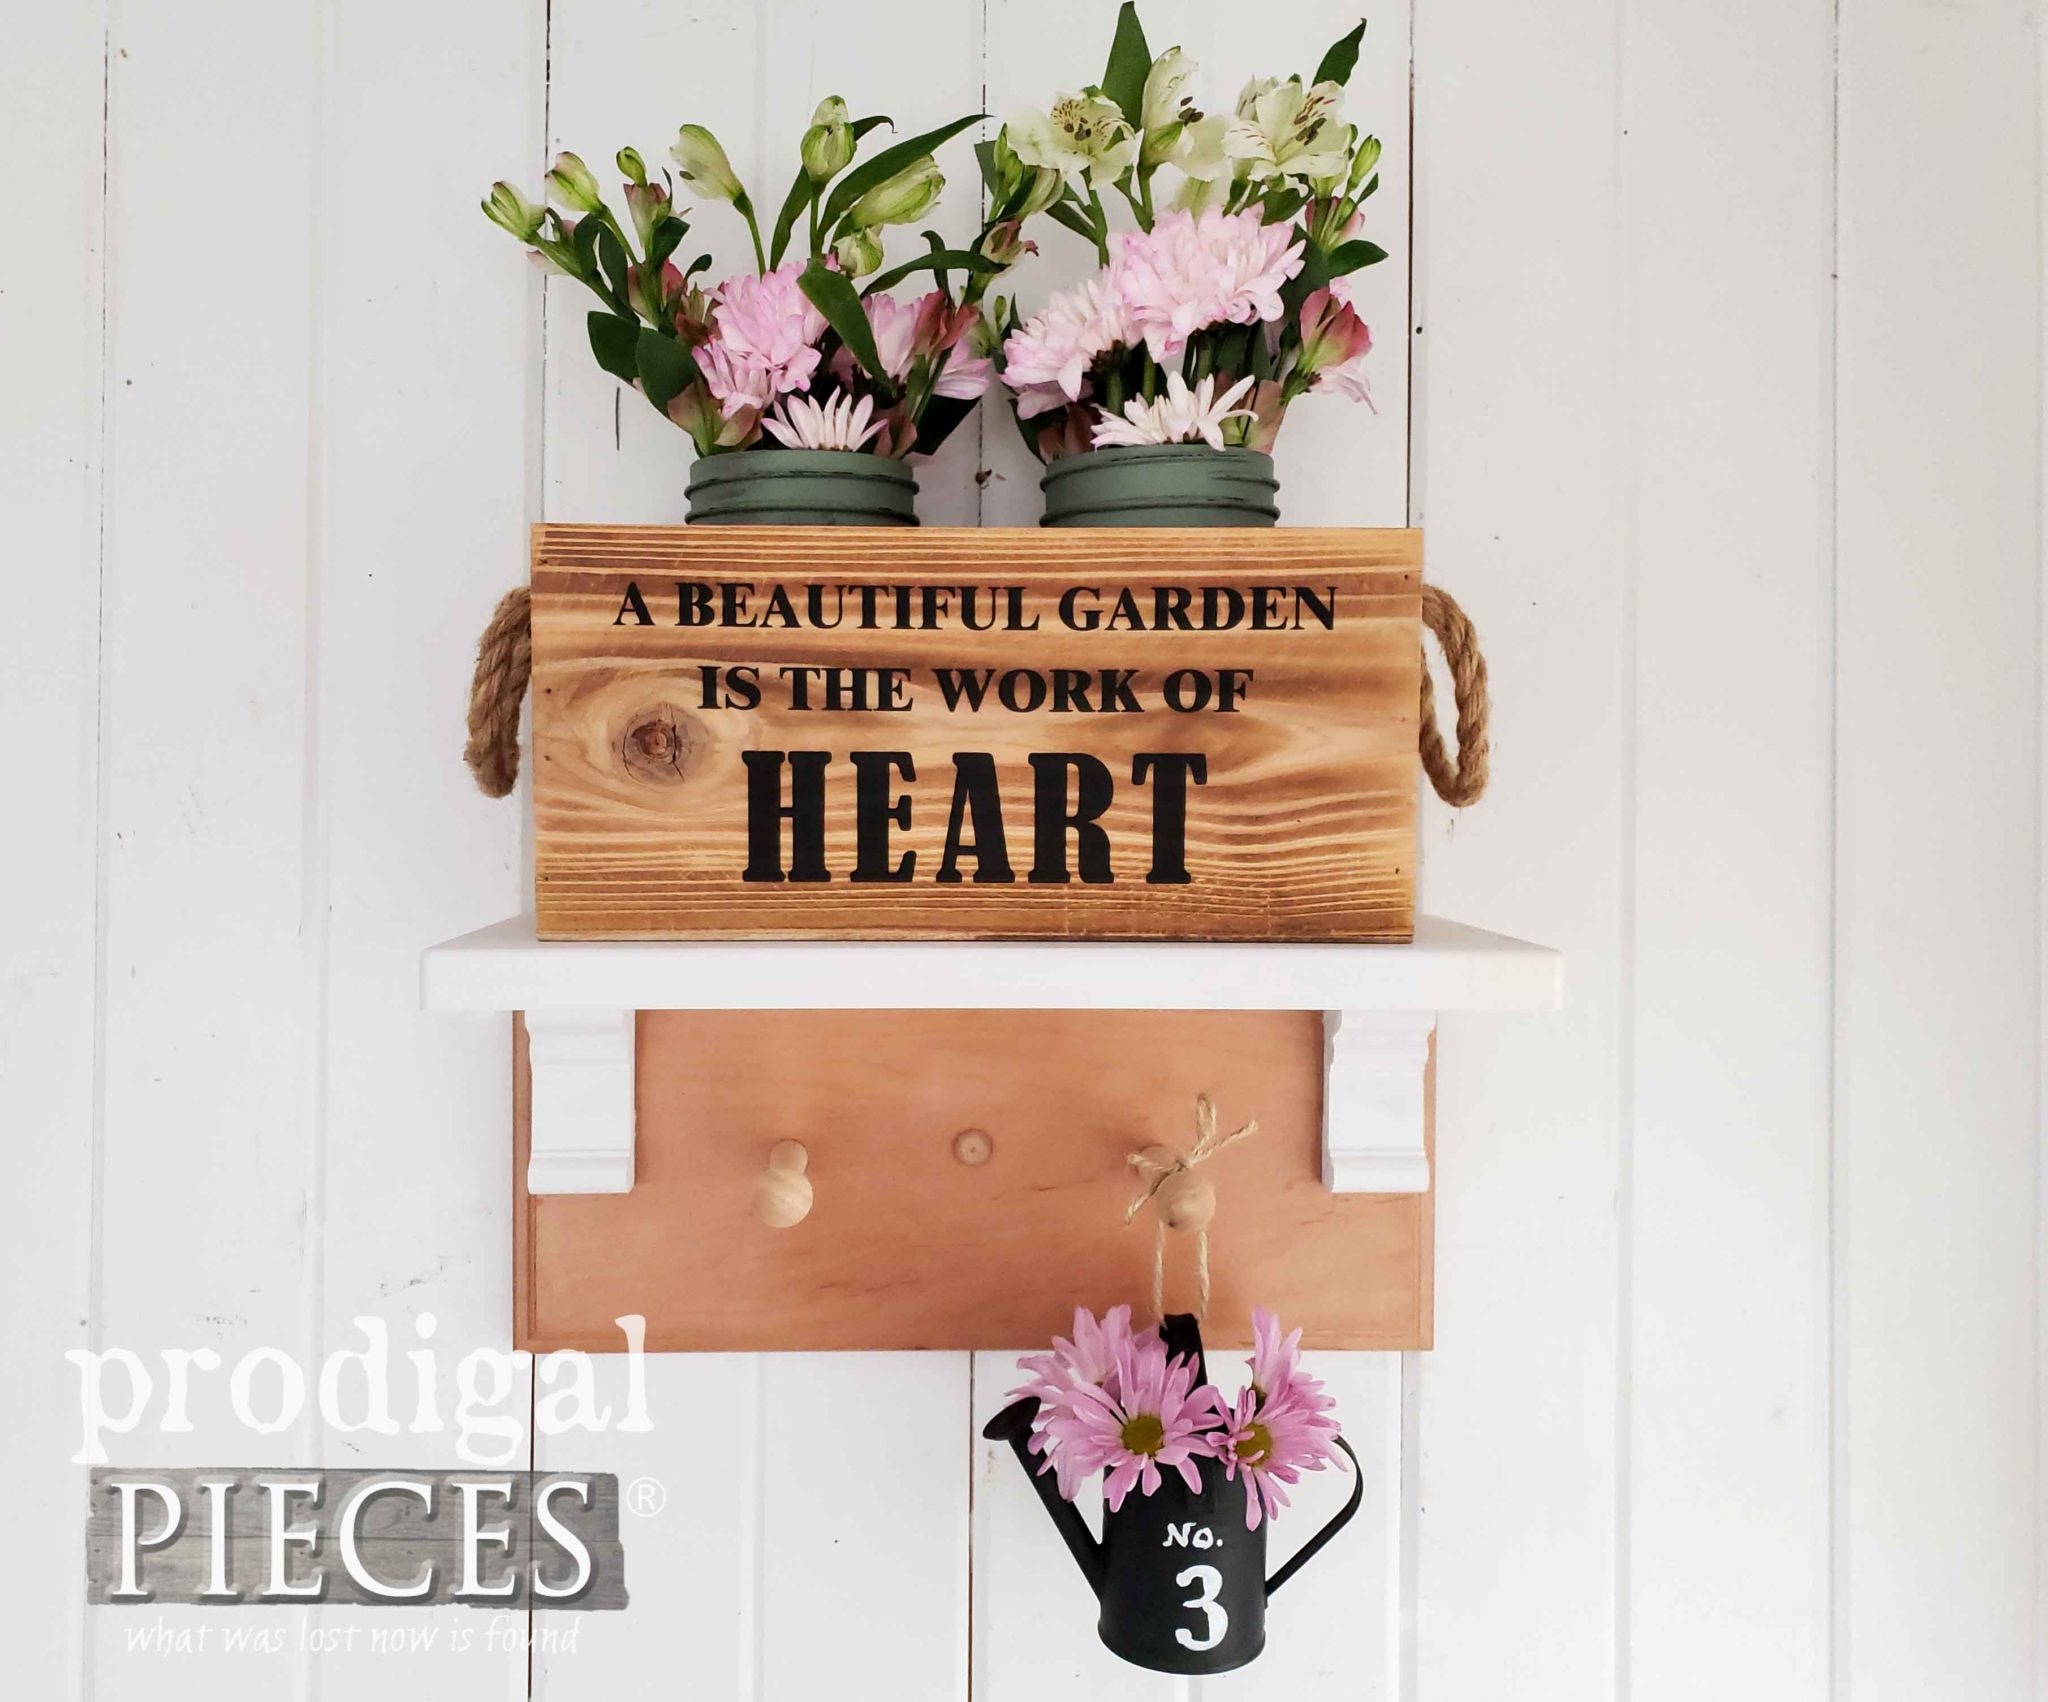 Upcycled Drawer Fronts Garden Shelf Coat Rack Created by Larissa of Prodigal Pieces | prodigalpieces.com #prodigalpieces #home #diy #farmhouse #homedecor #garden #homedecorideas #shopping